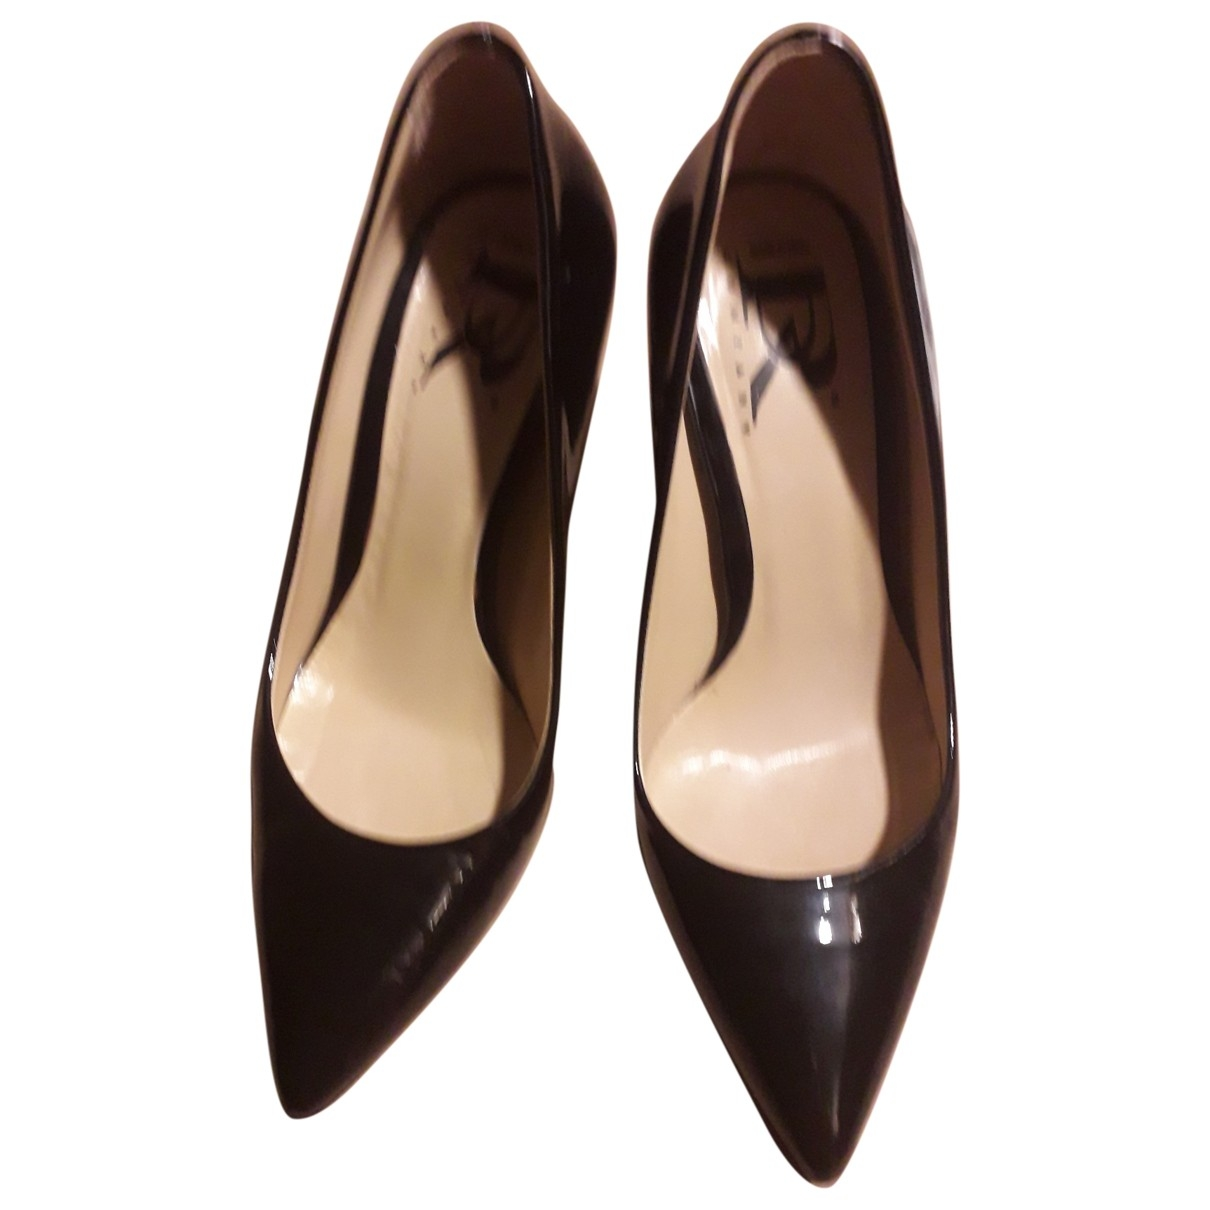 Non Signé / Unsigned \N Black Patent leather Heels for Women 35 EU